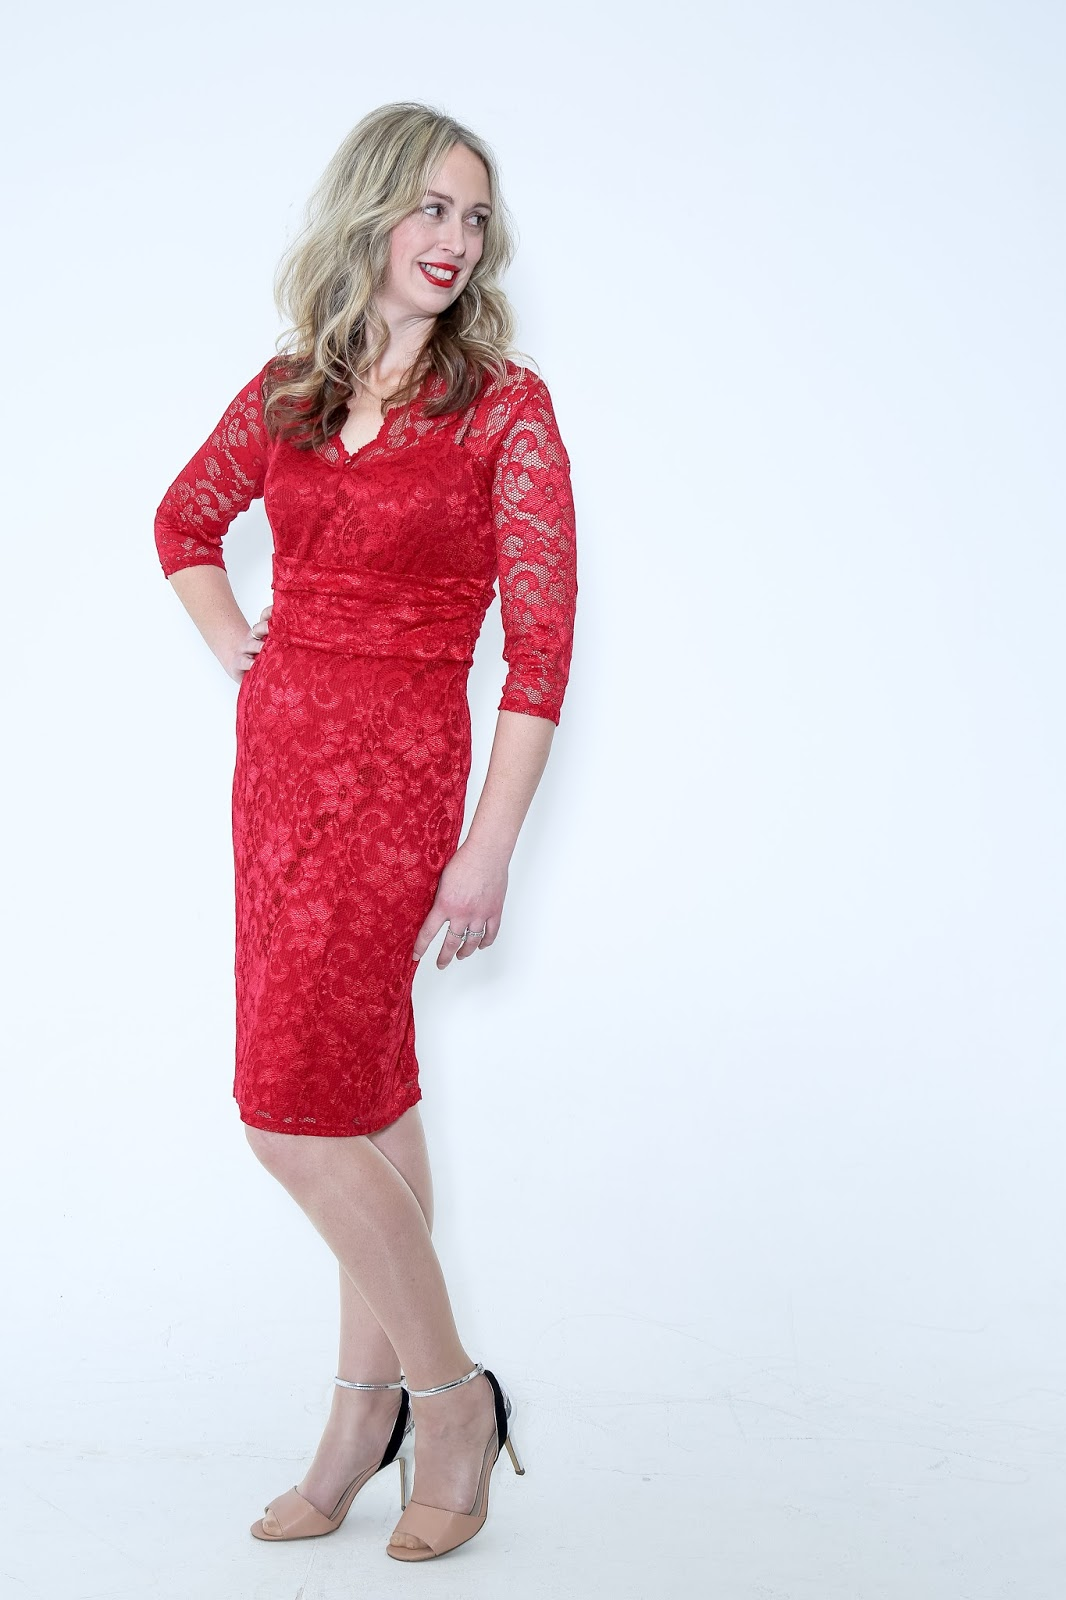 The Red Christmas Dress For A Photo Shoot With Marisota